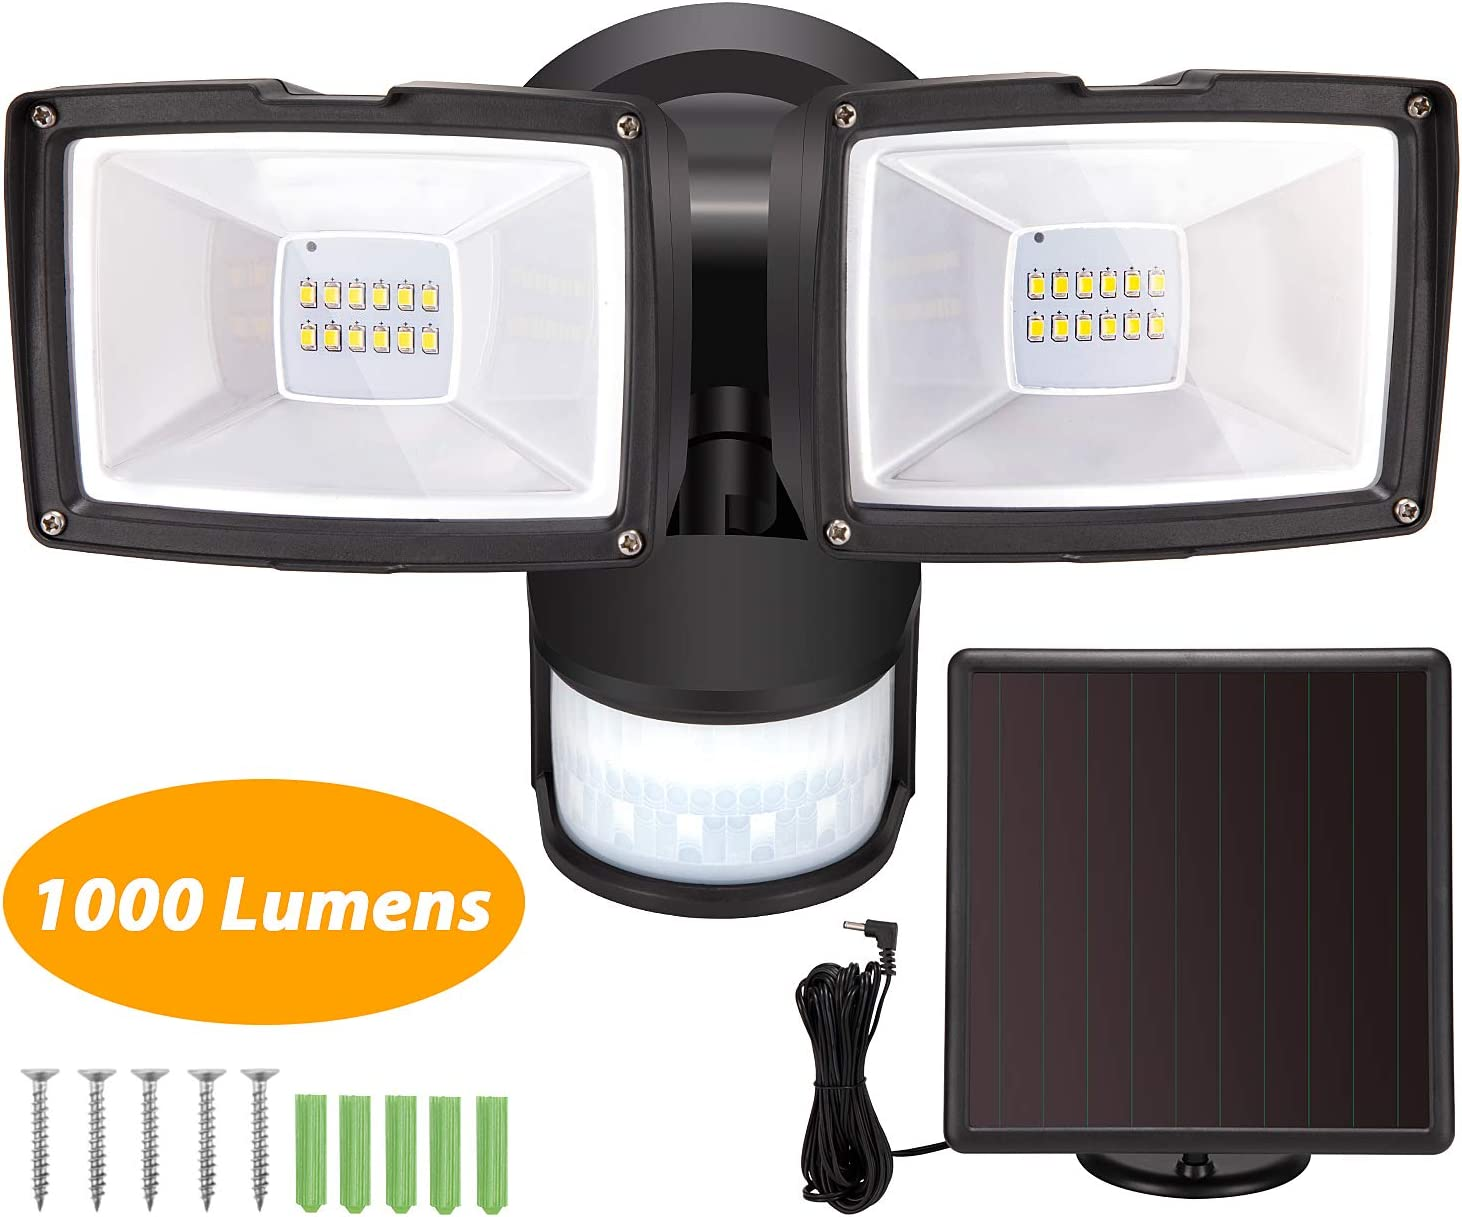 Amazon coupon code for Solar Motion Sensor Lights 1000 Lumen LED